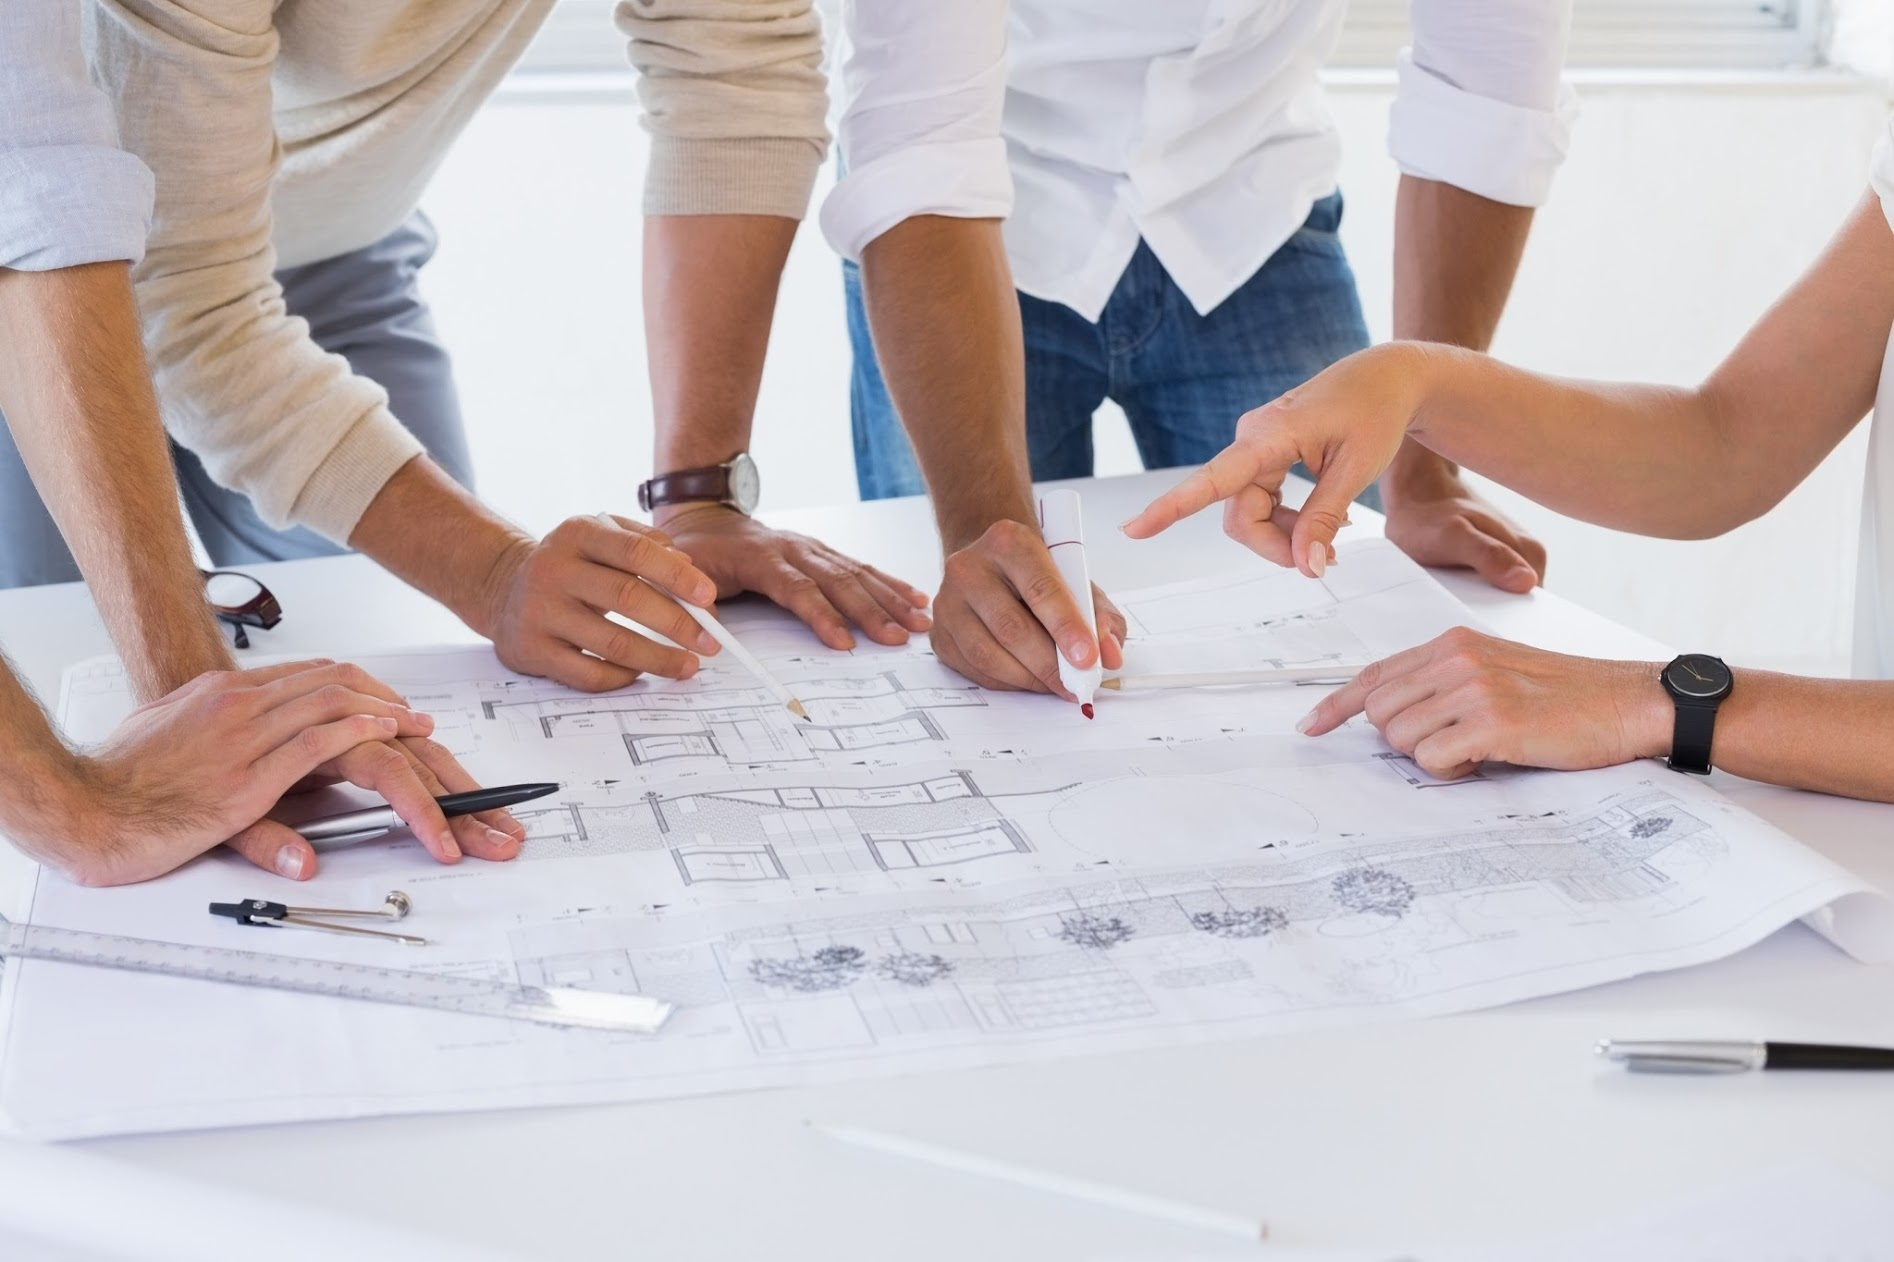 Two qualities you need to succeed in an architecture for Best interior design companies to work for